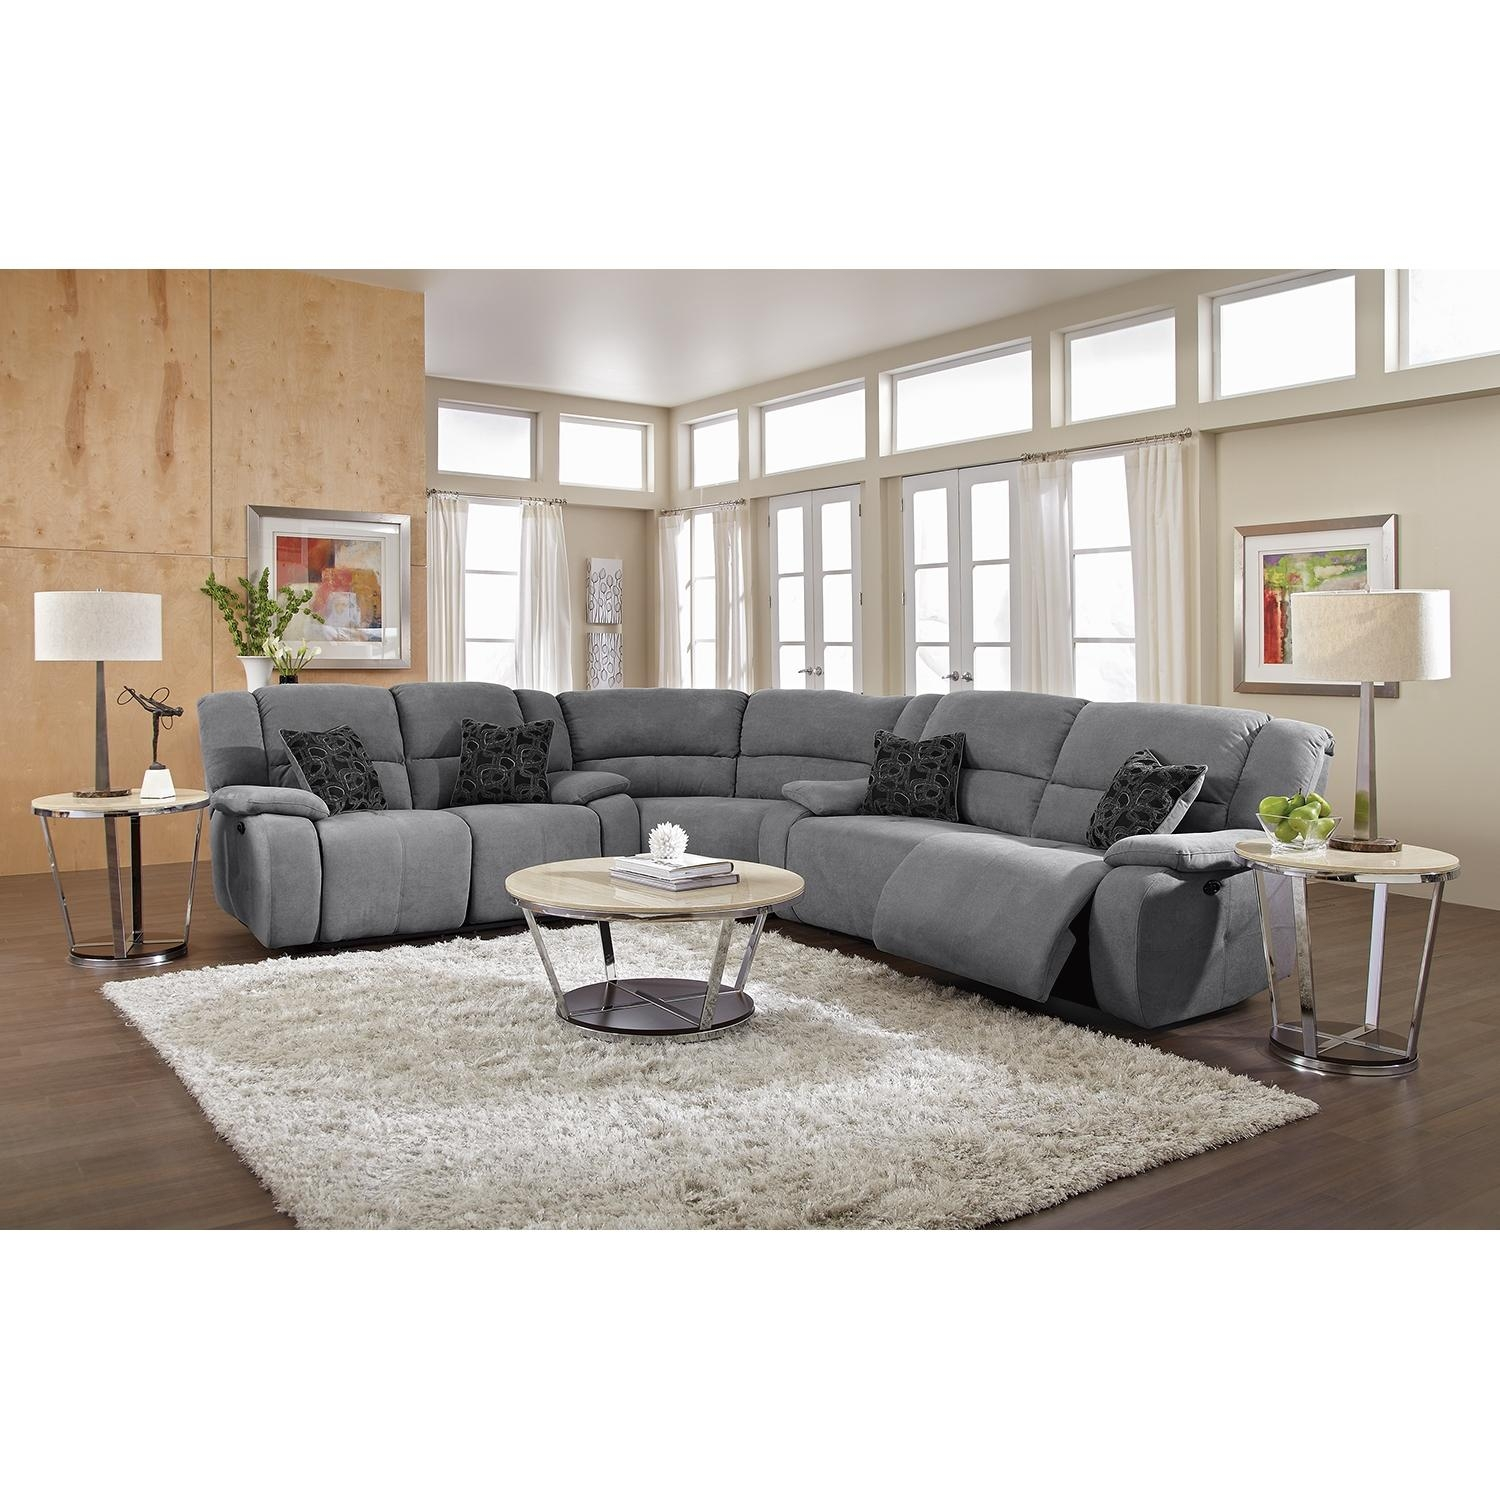 22 ideas of sectional sofas with electric recliners sofa for U shaped sectional sofa with recliners